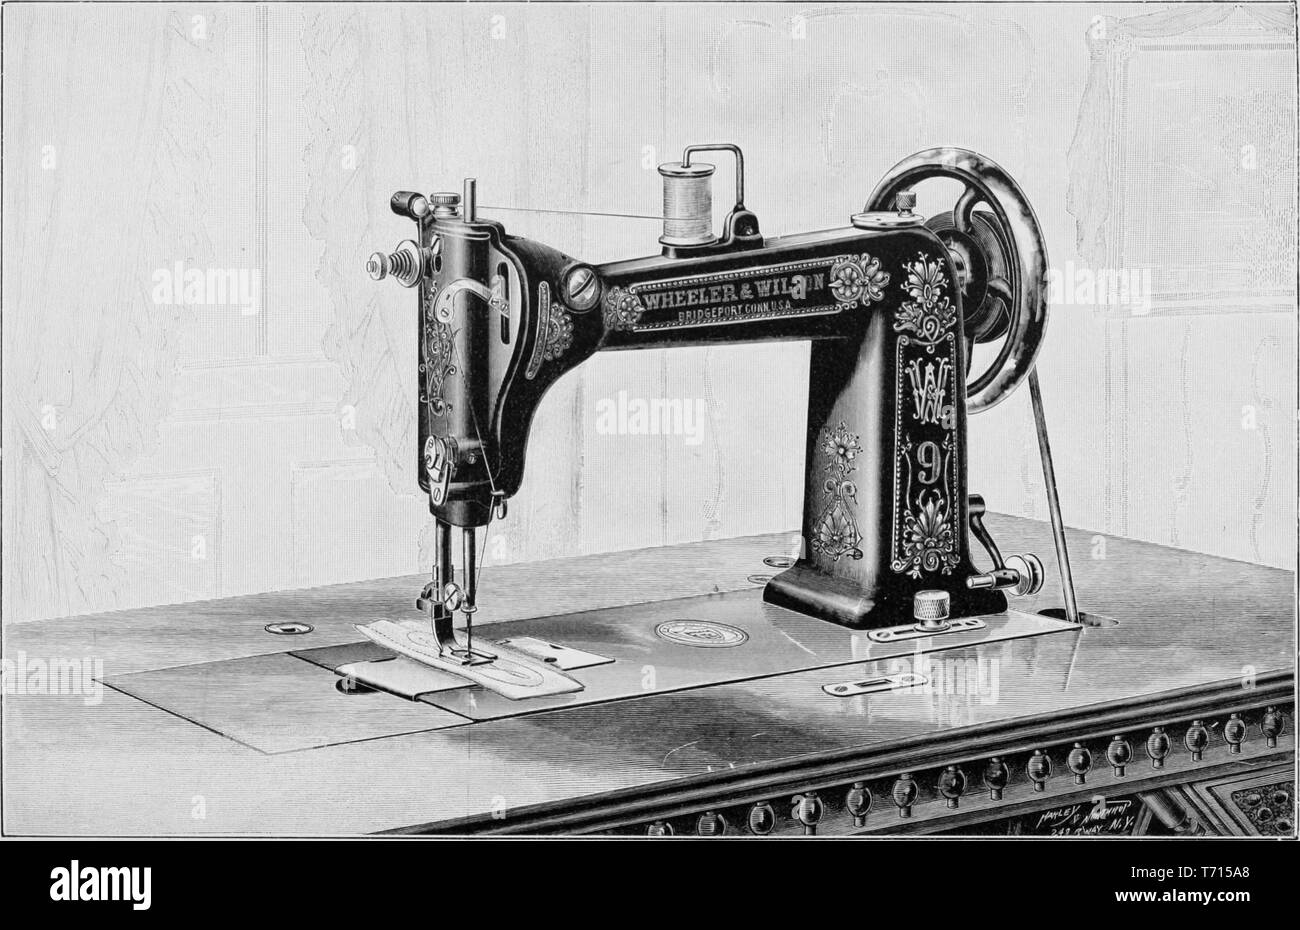 Engraving of the Wheeler and Wilson sewing machine, from the book 'Modern Mechanism' by Park Benjamin, 1892. Courtesy Internet Archive. () - Stock Image